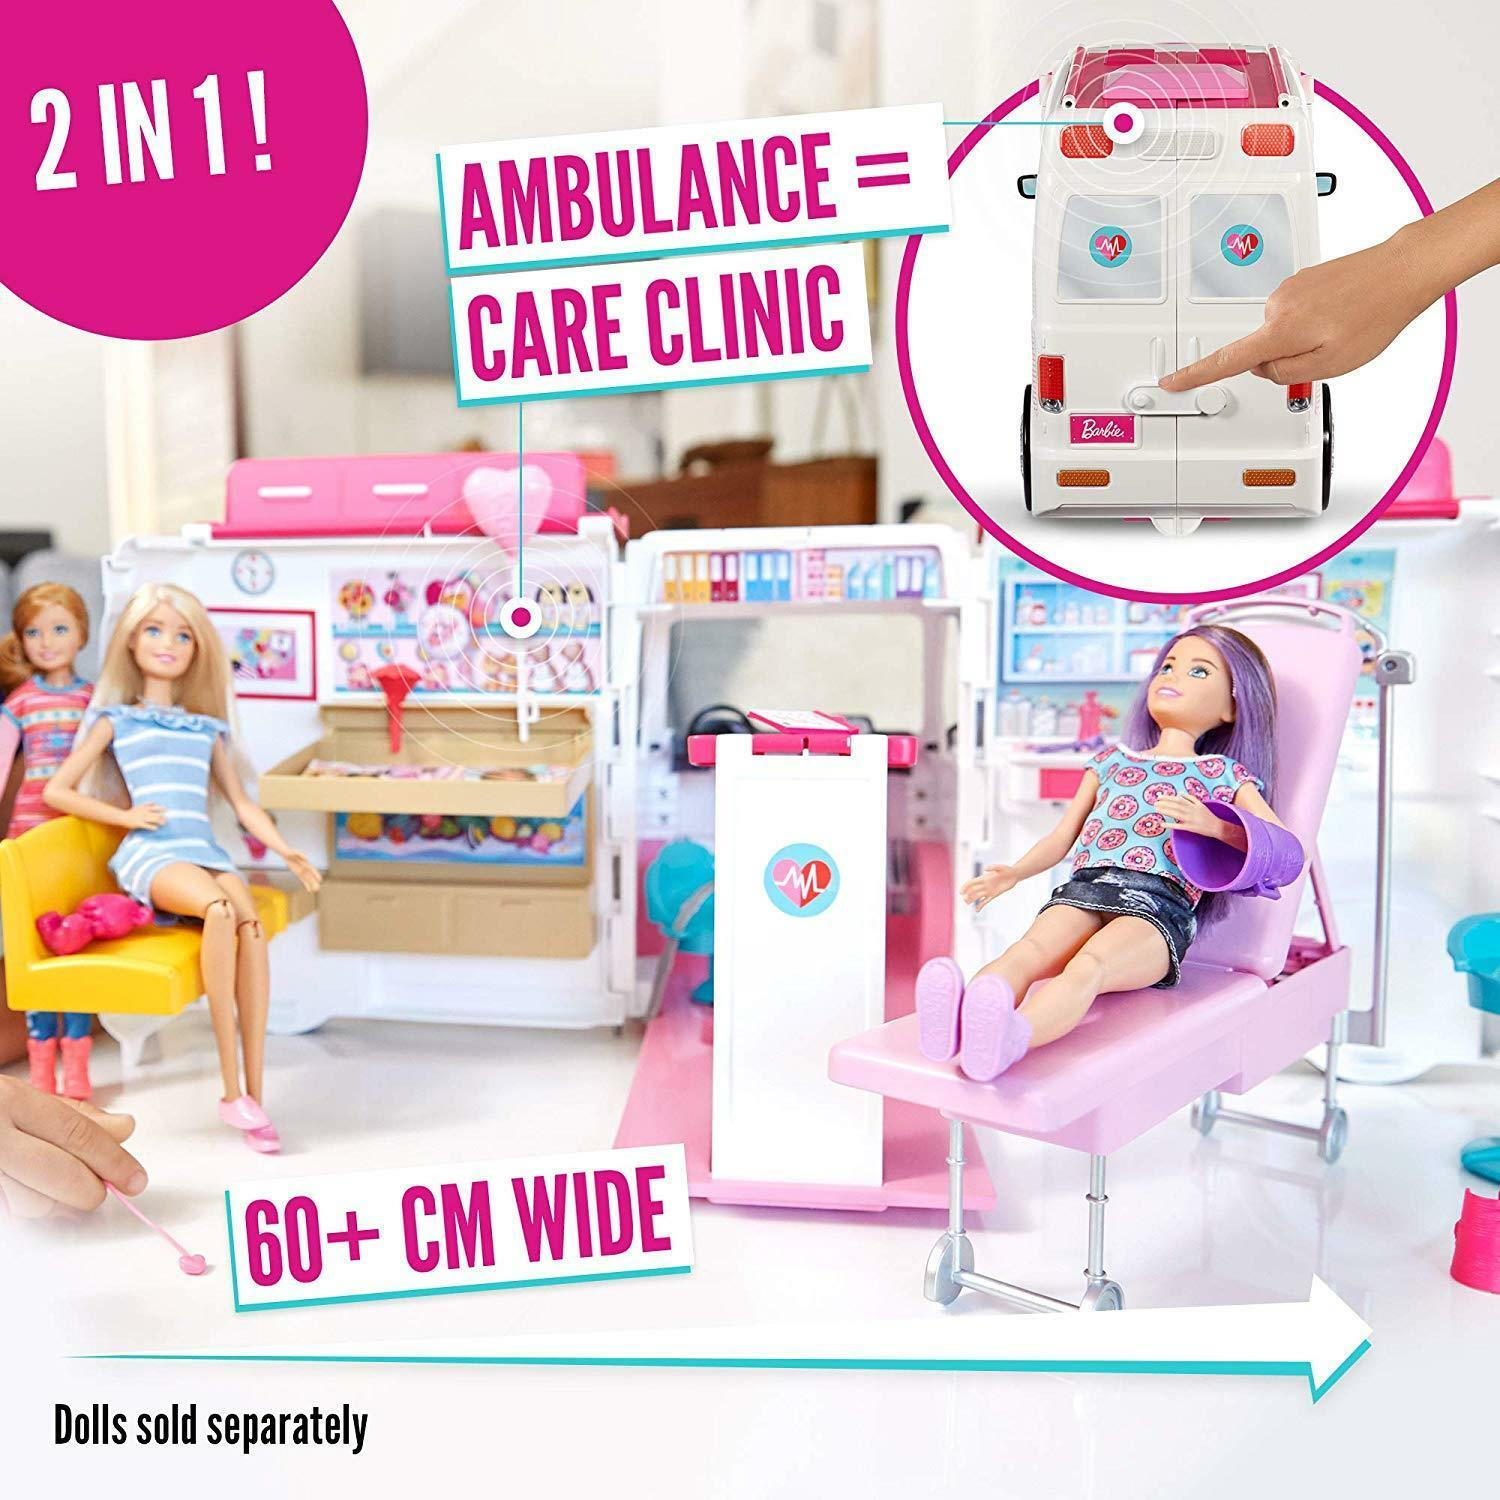 Barbie Play Ambulance Mobile Care Clinic For Dolls With With With Accessories Toy Playset 7e0d57